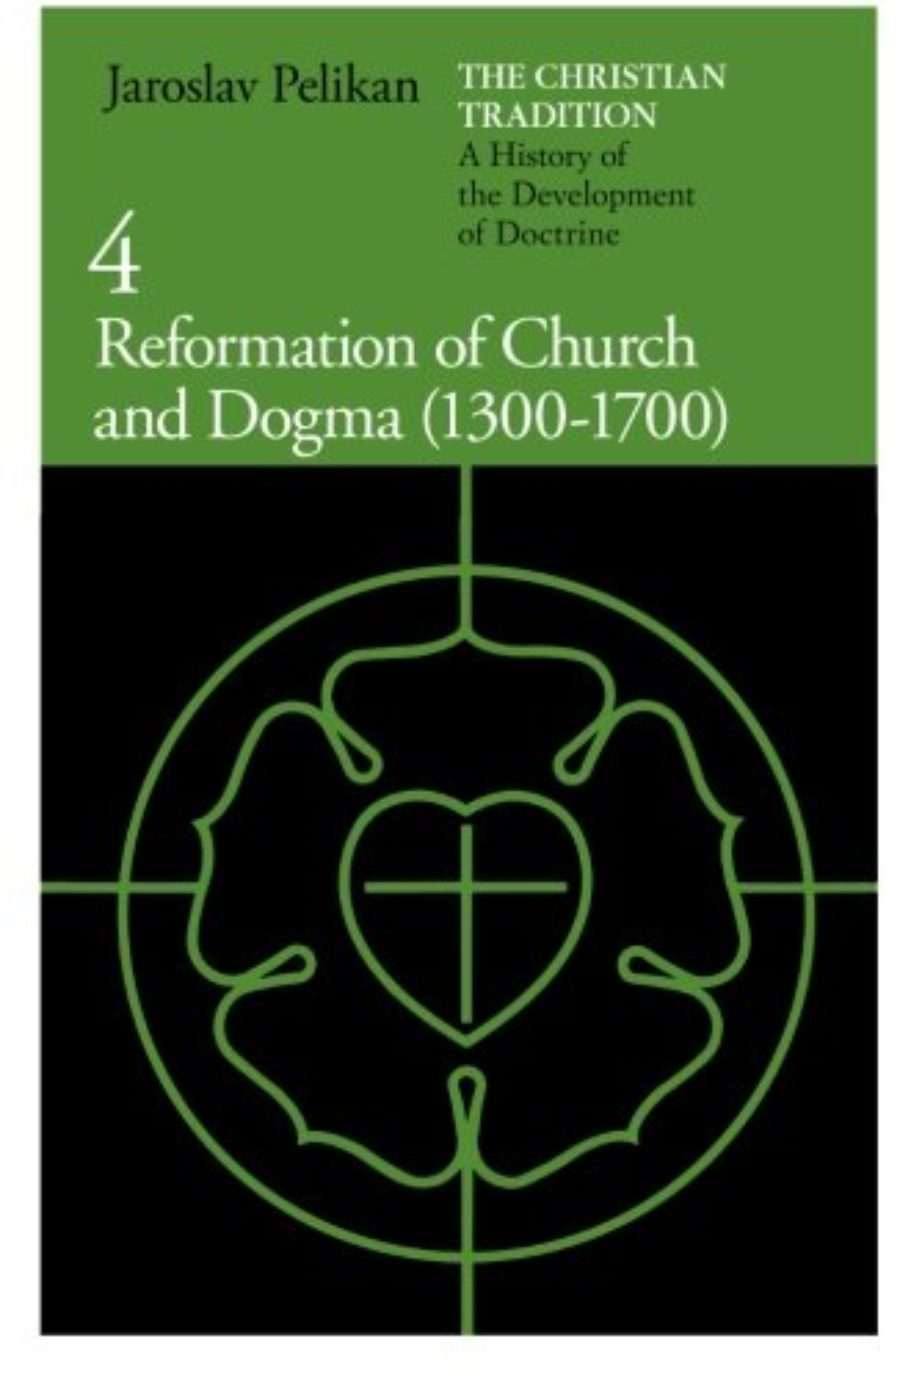 Cover of The Christian Tradition: A History of the Development of Doctrine, Vol. 4: Reformation of Church and Dogma (1300-1700)